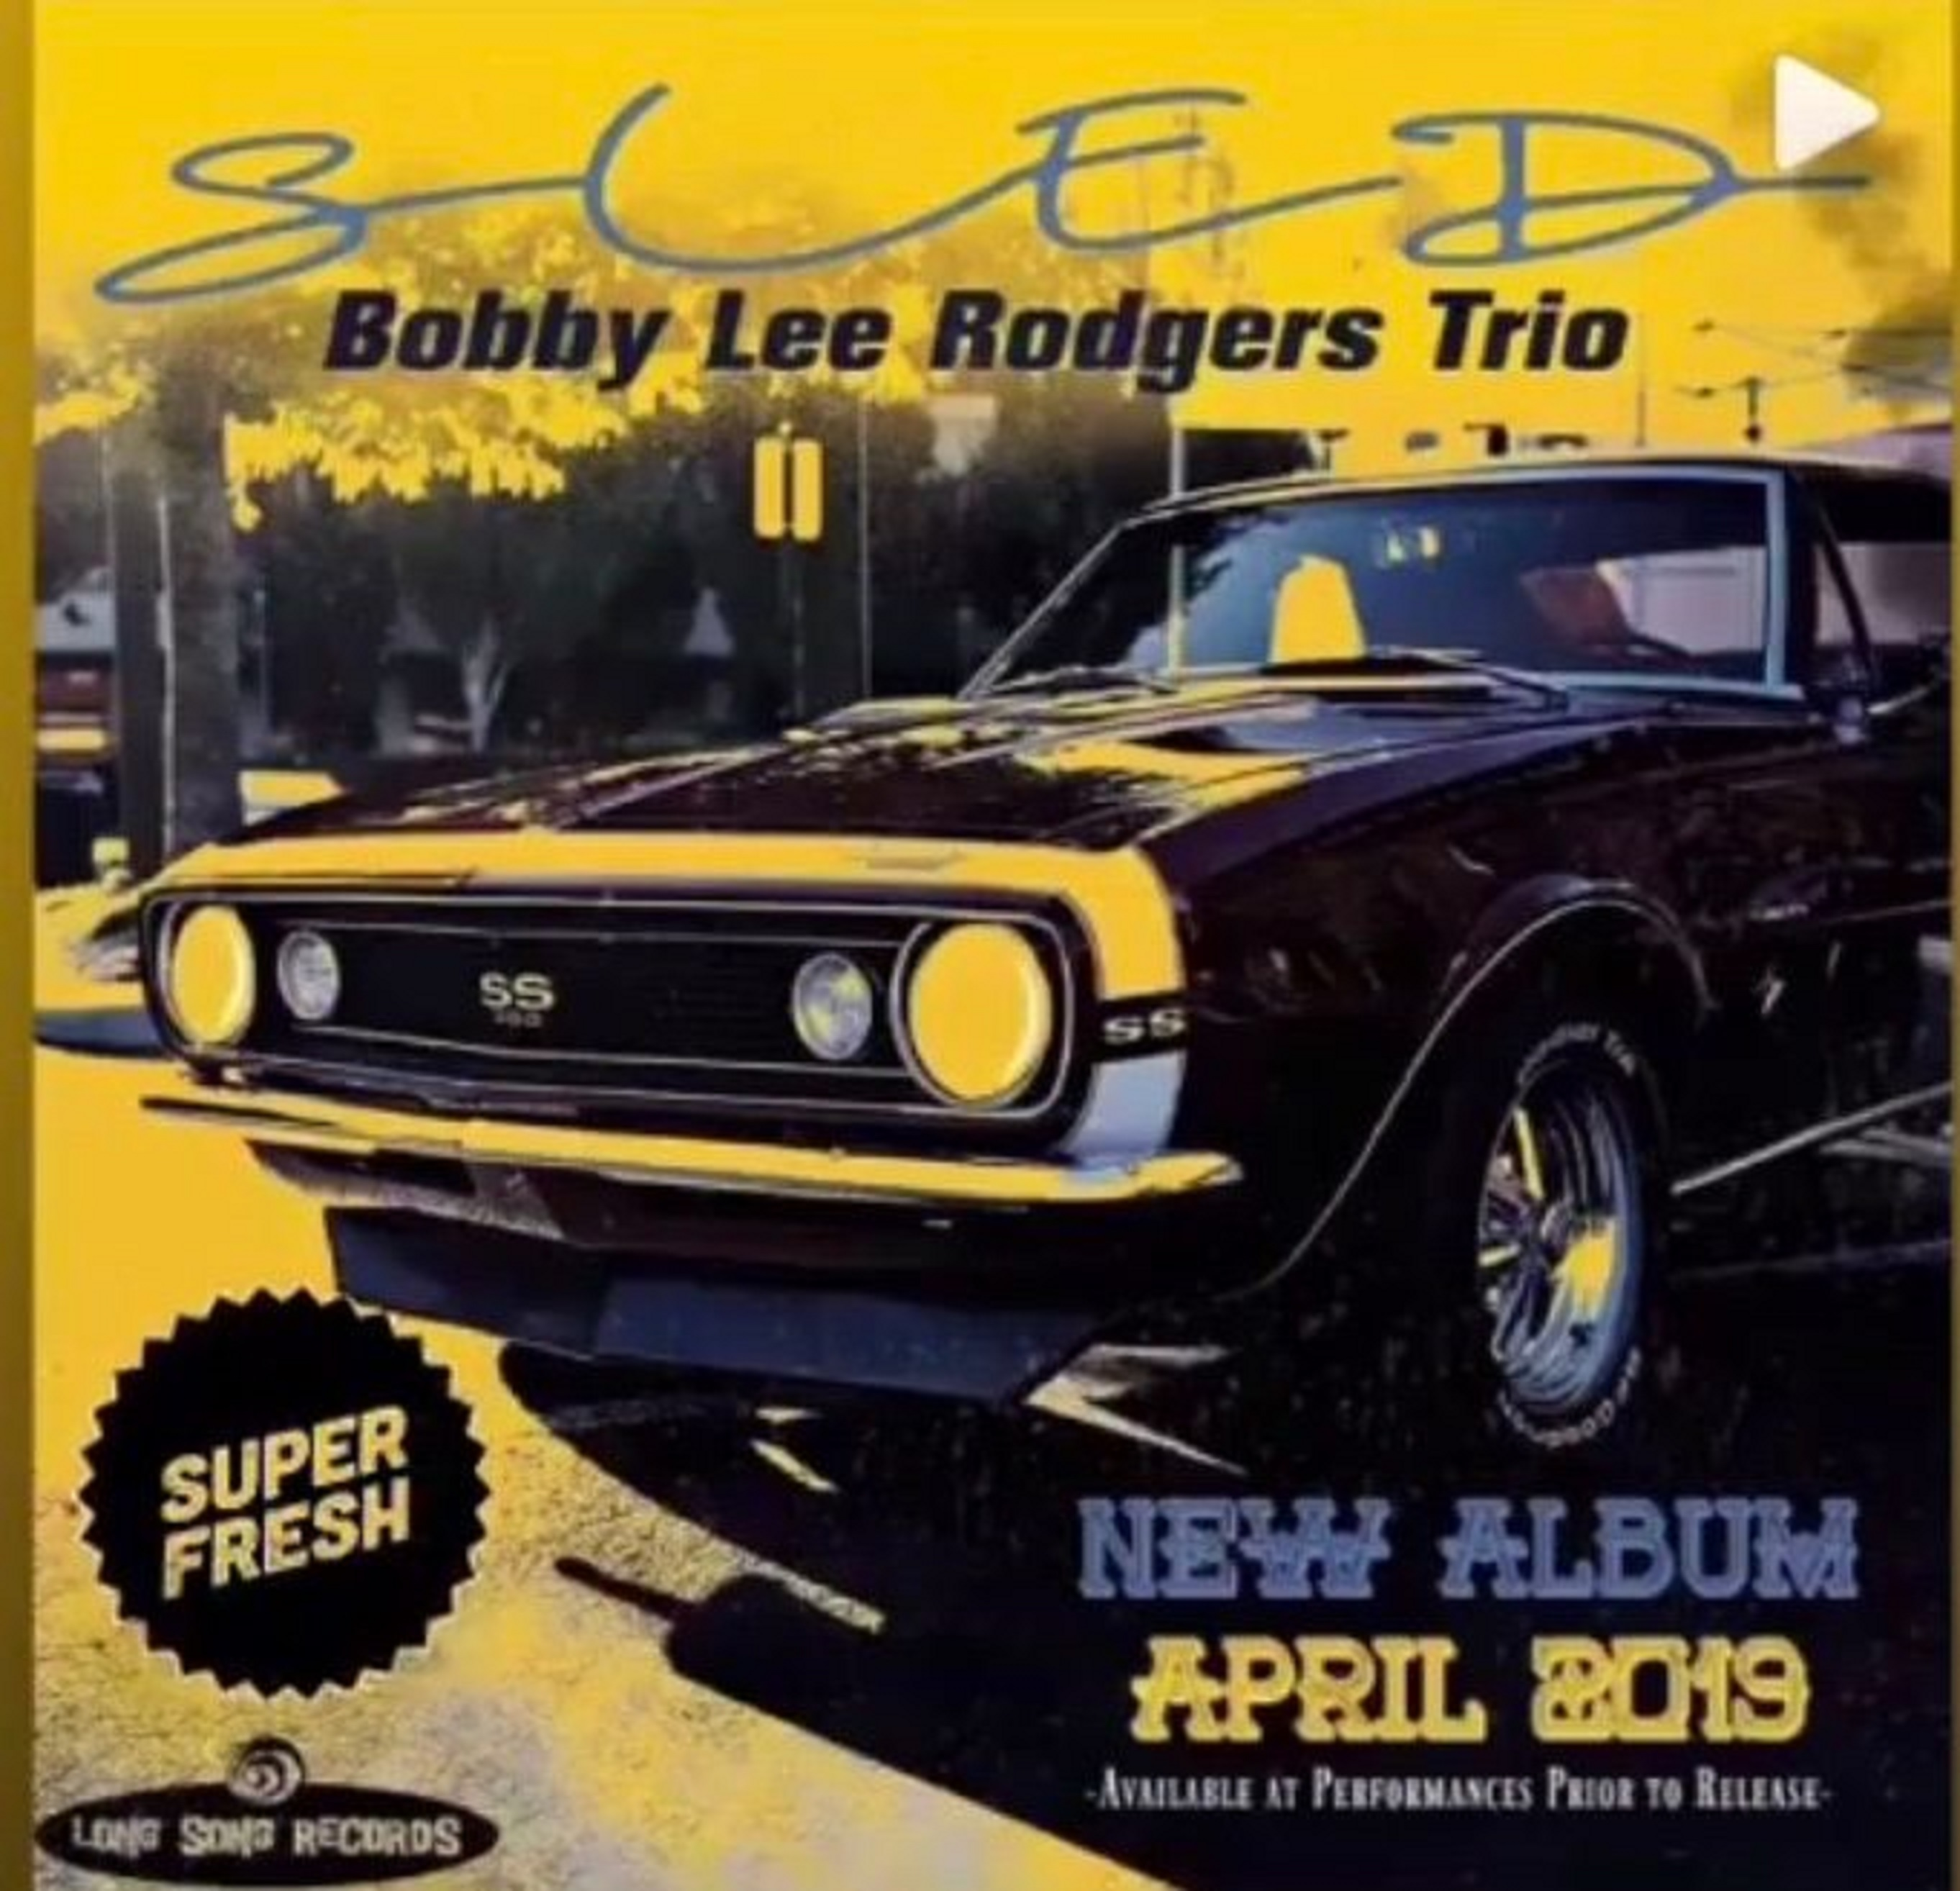 BOBBY LEE RODGERS  Releases Exciting New Album SLED on 4/23